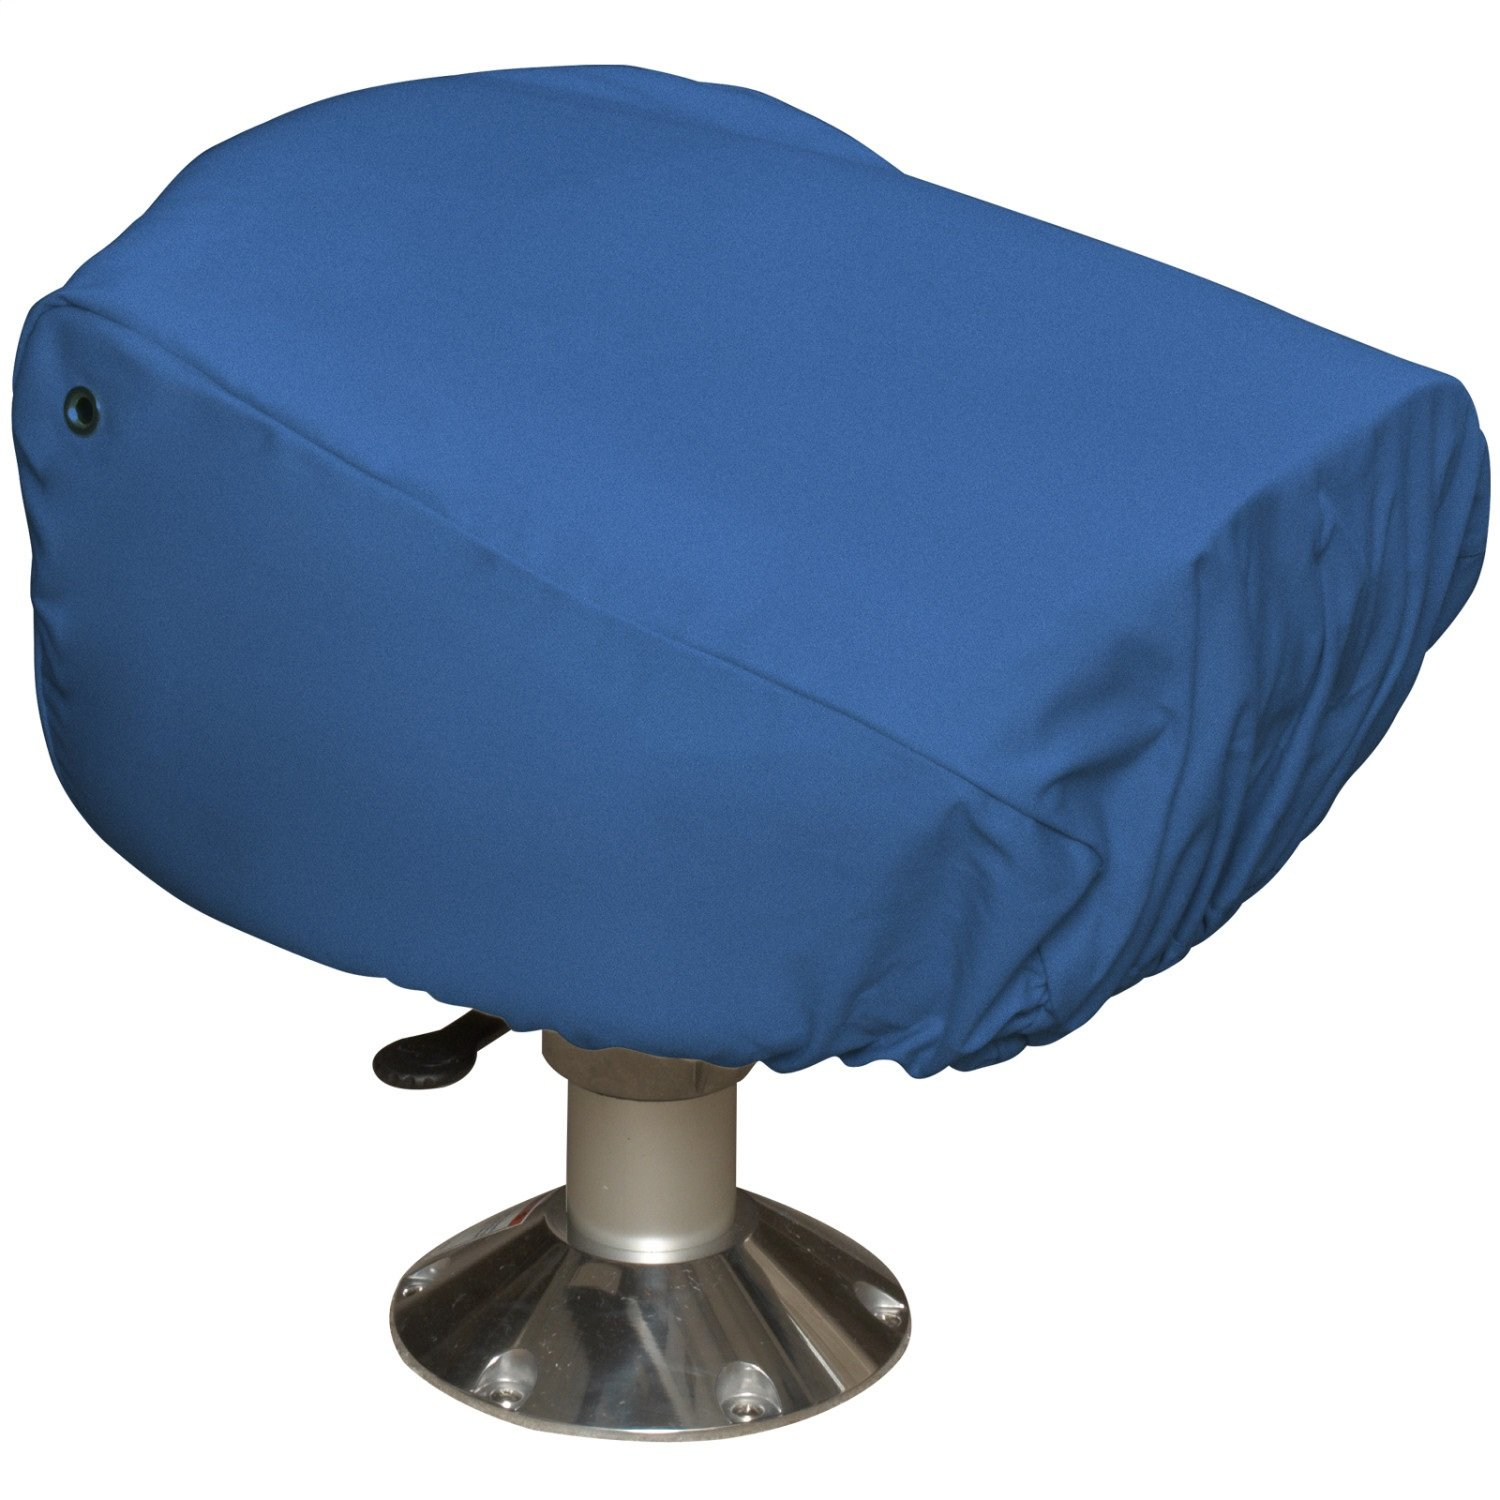 Budge Single Boat Seat Cover Fits a Single Boat Seat 22'' Long x 19'' Wide x 21'' High, BA-10 (Blue)